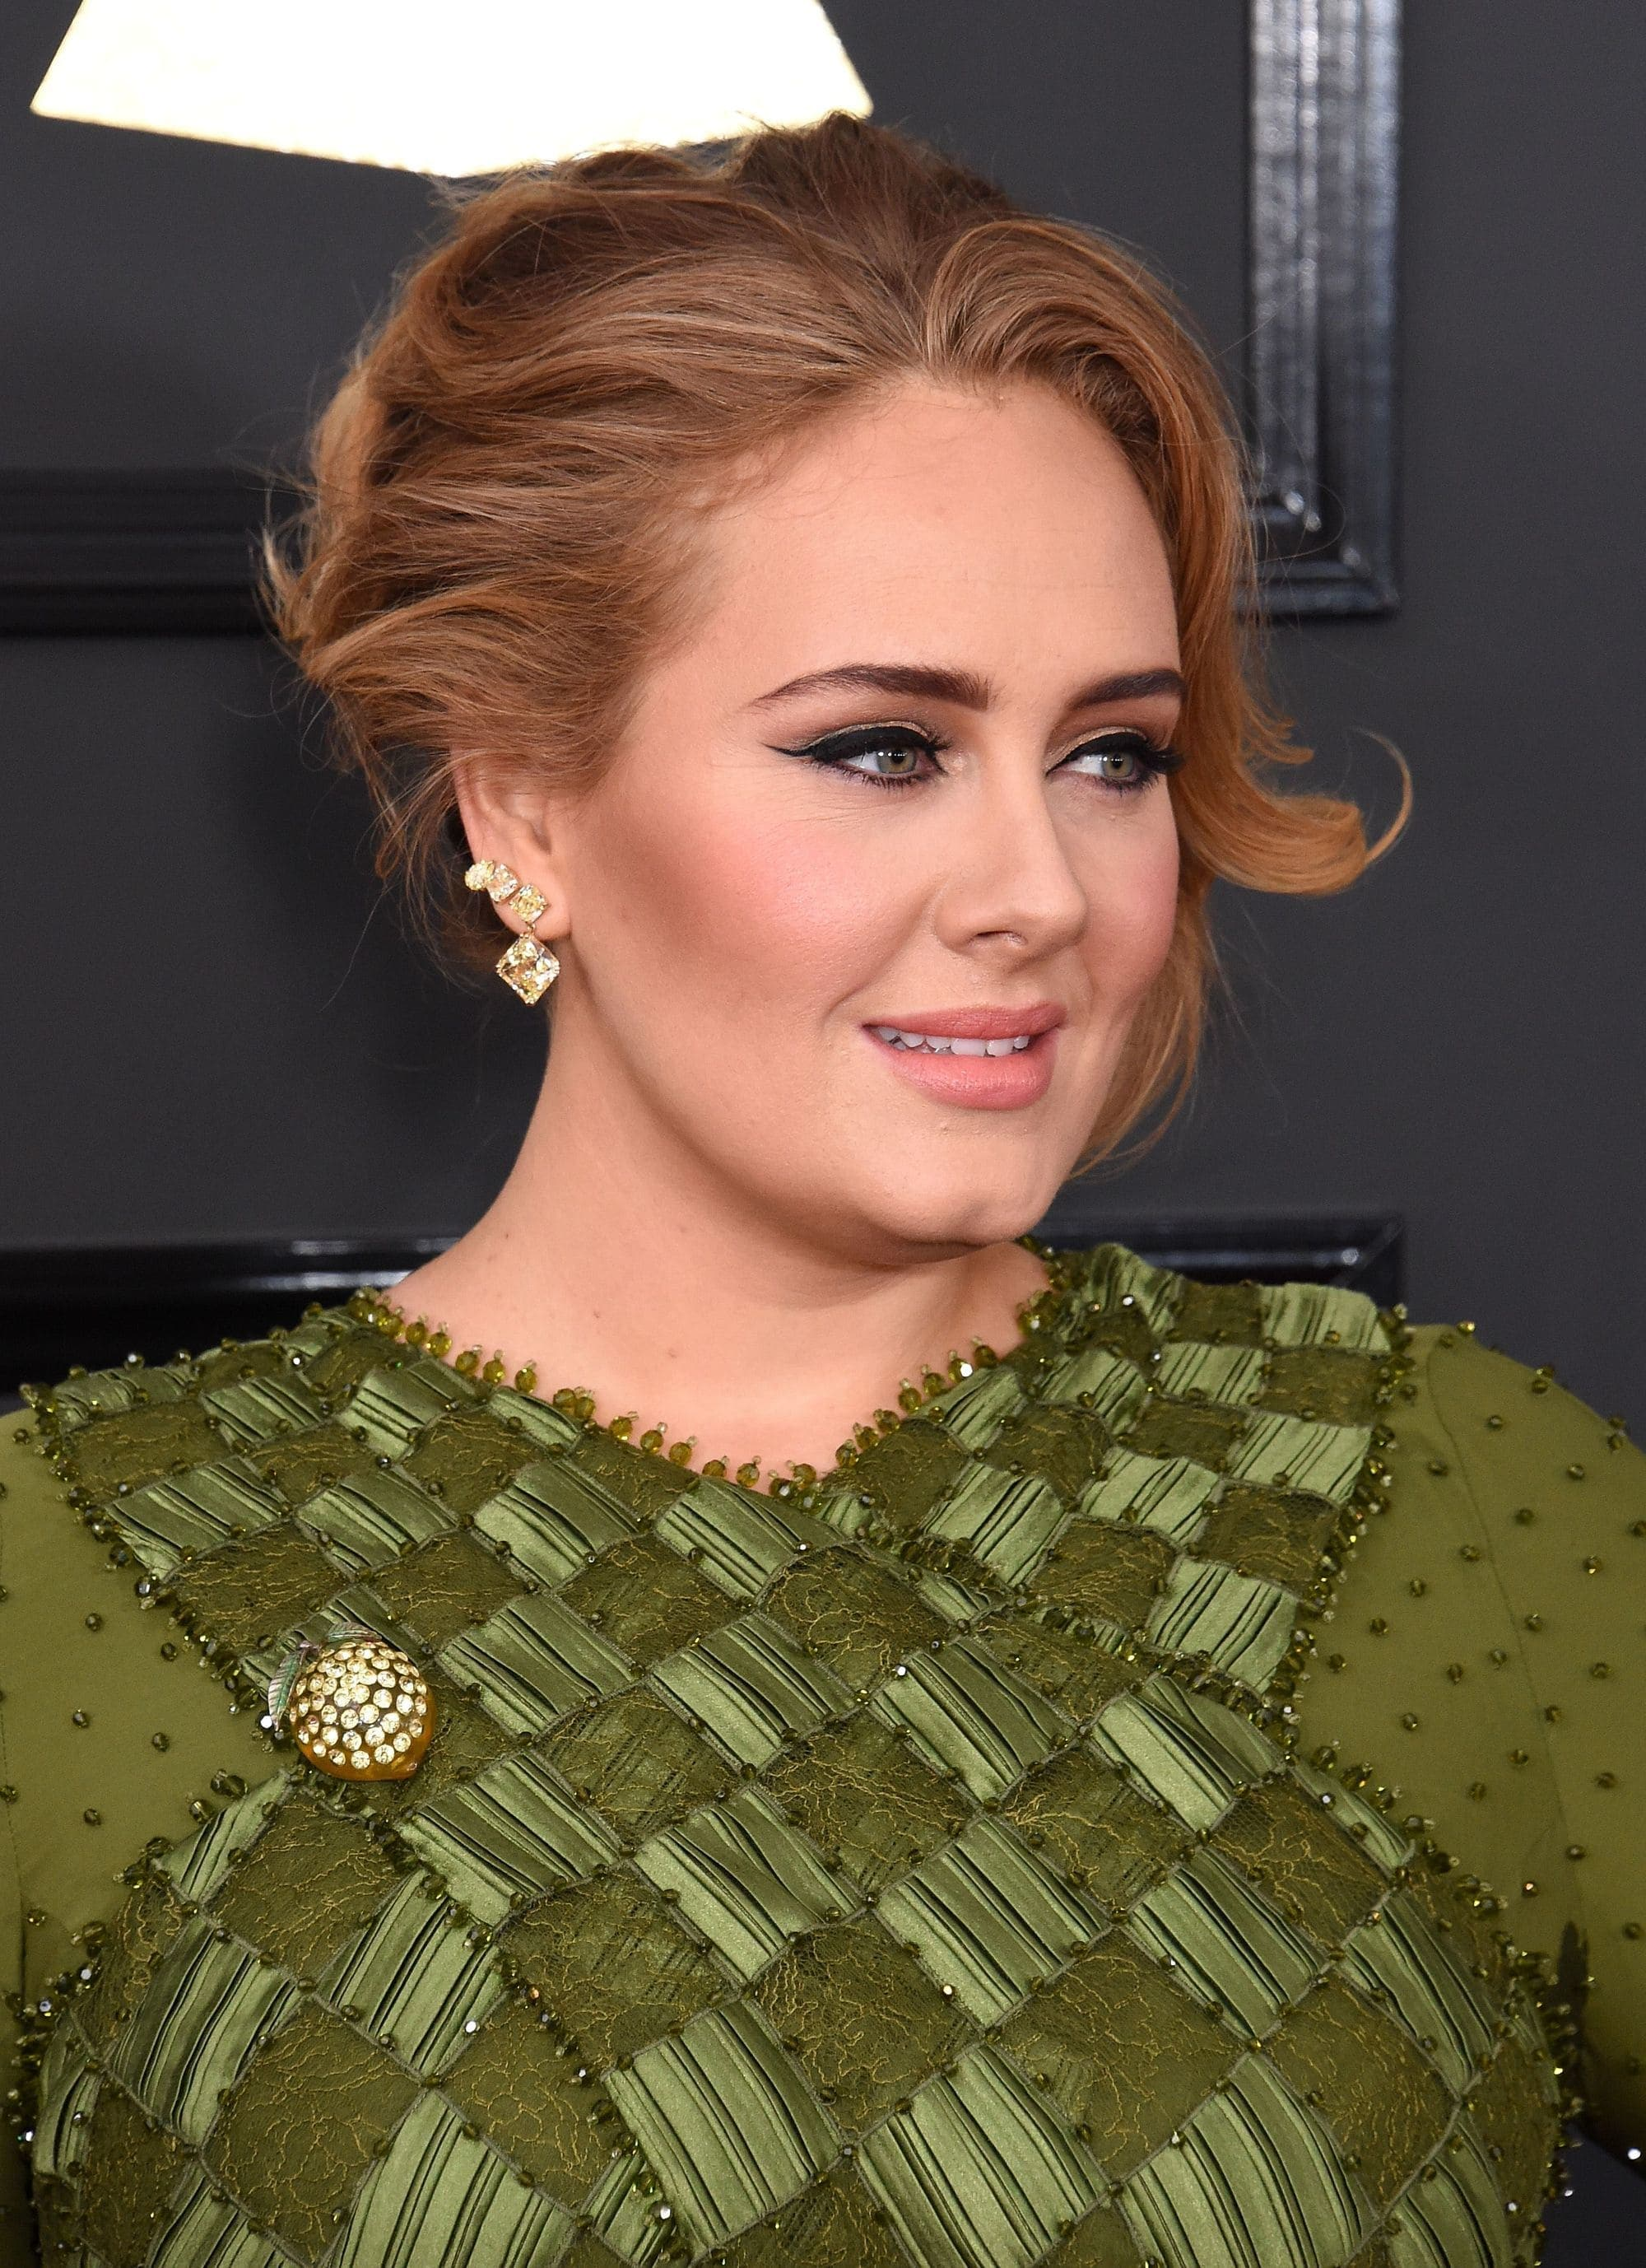 Adele light brown hair chic updo with loose tendrils